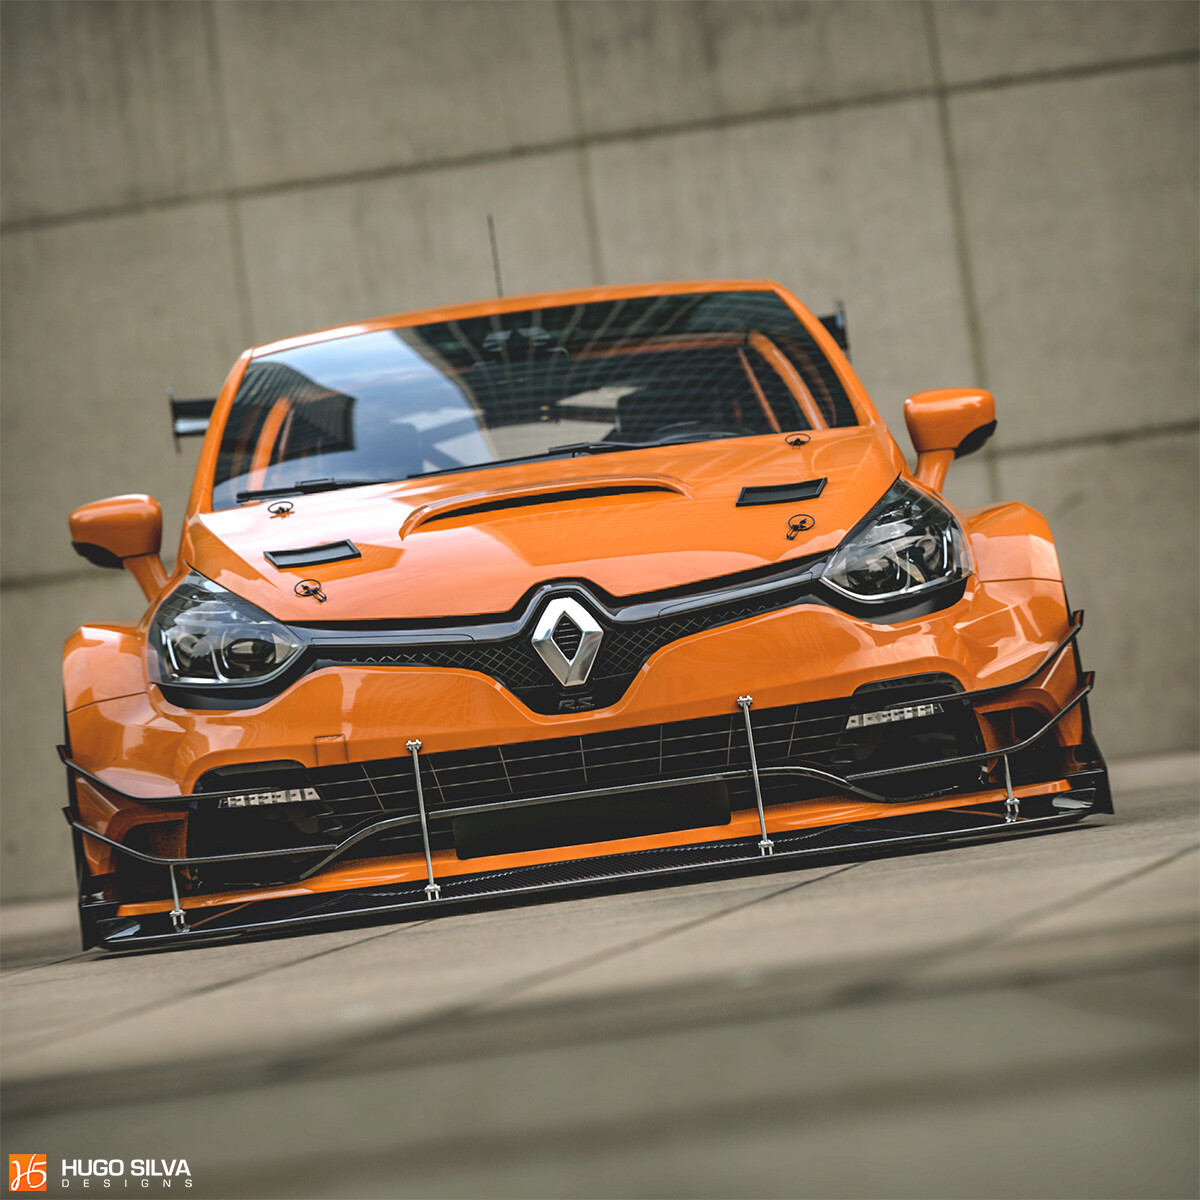 Renault Clio Rs >> Old Renault Clio Rs Race Car With Widebody Kit Looks Angry